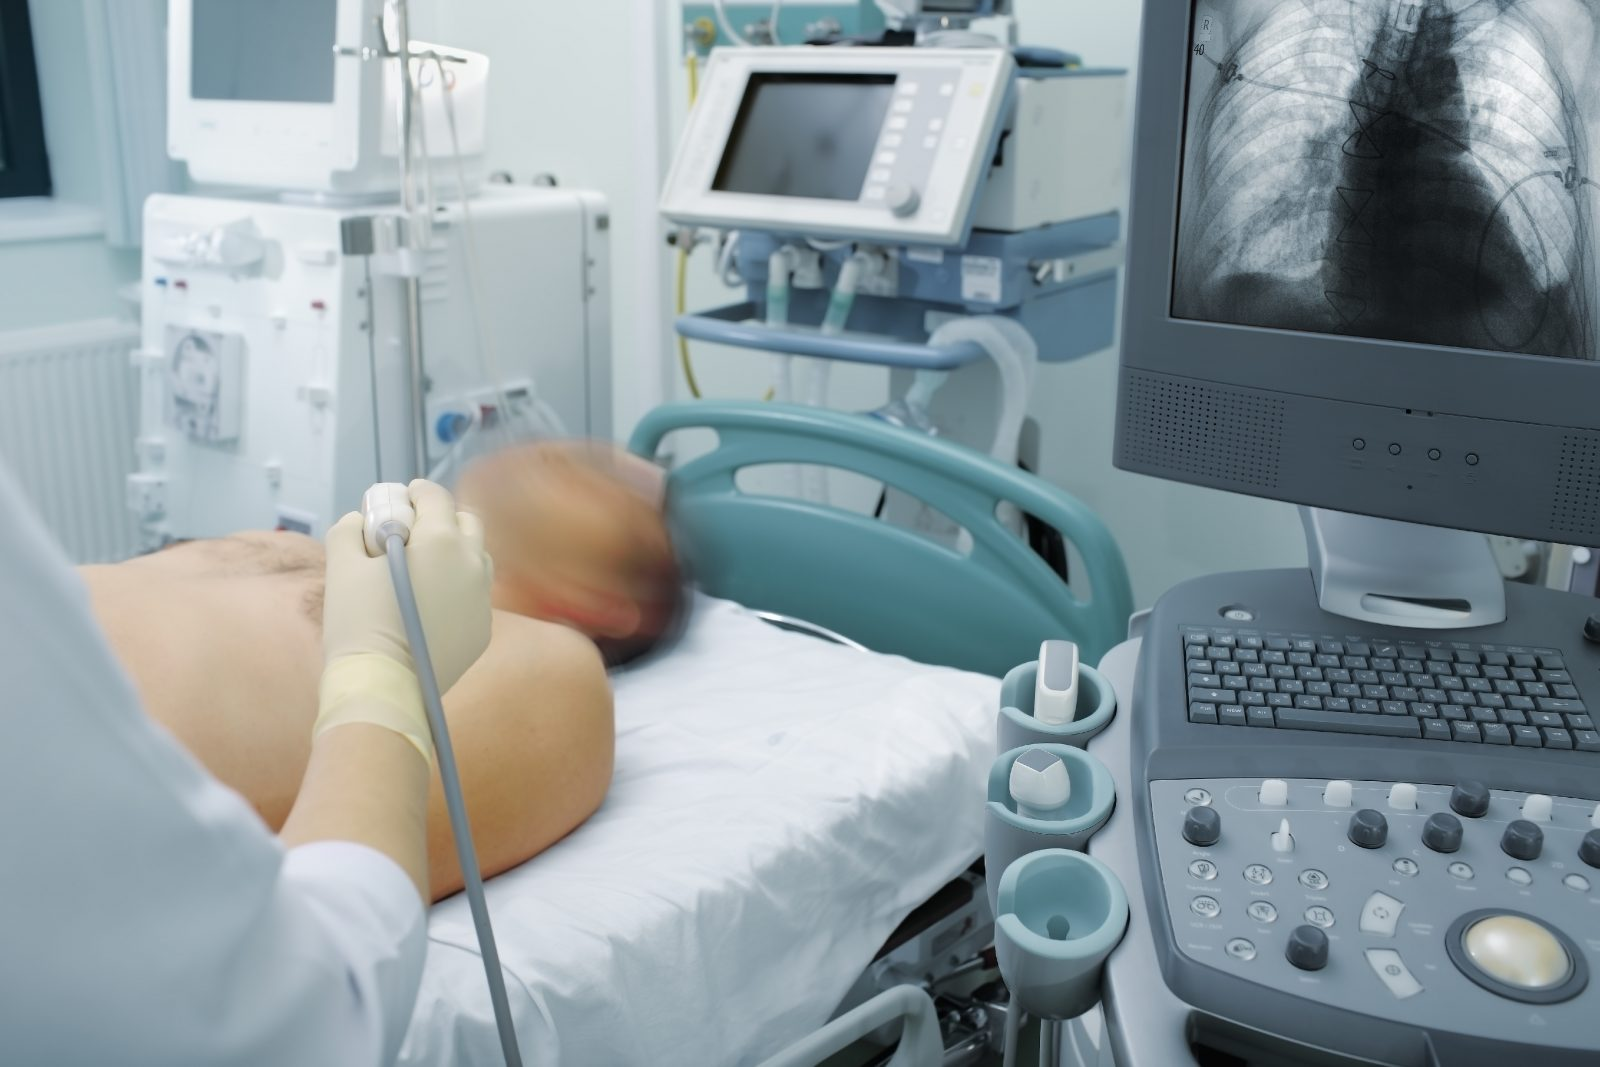 Medical personnel use an ultrasound machine to check a patient's lungs.